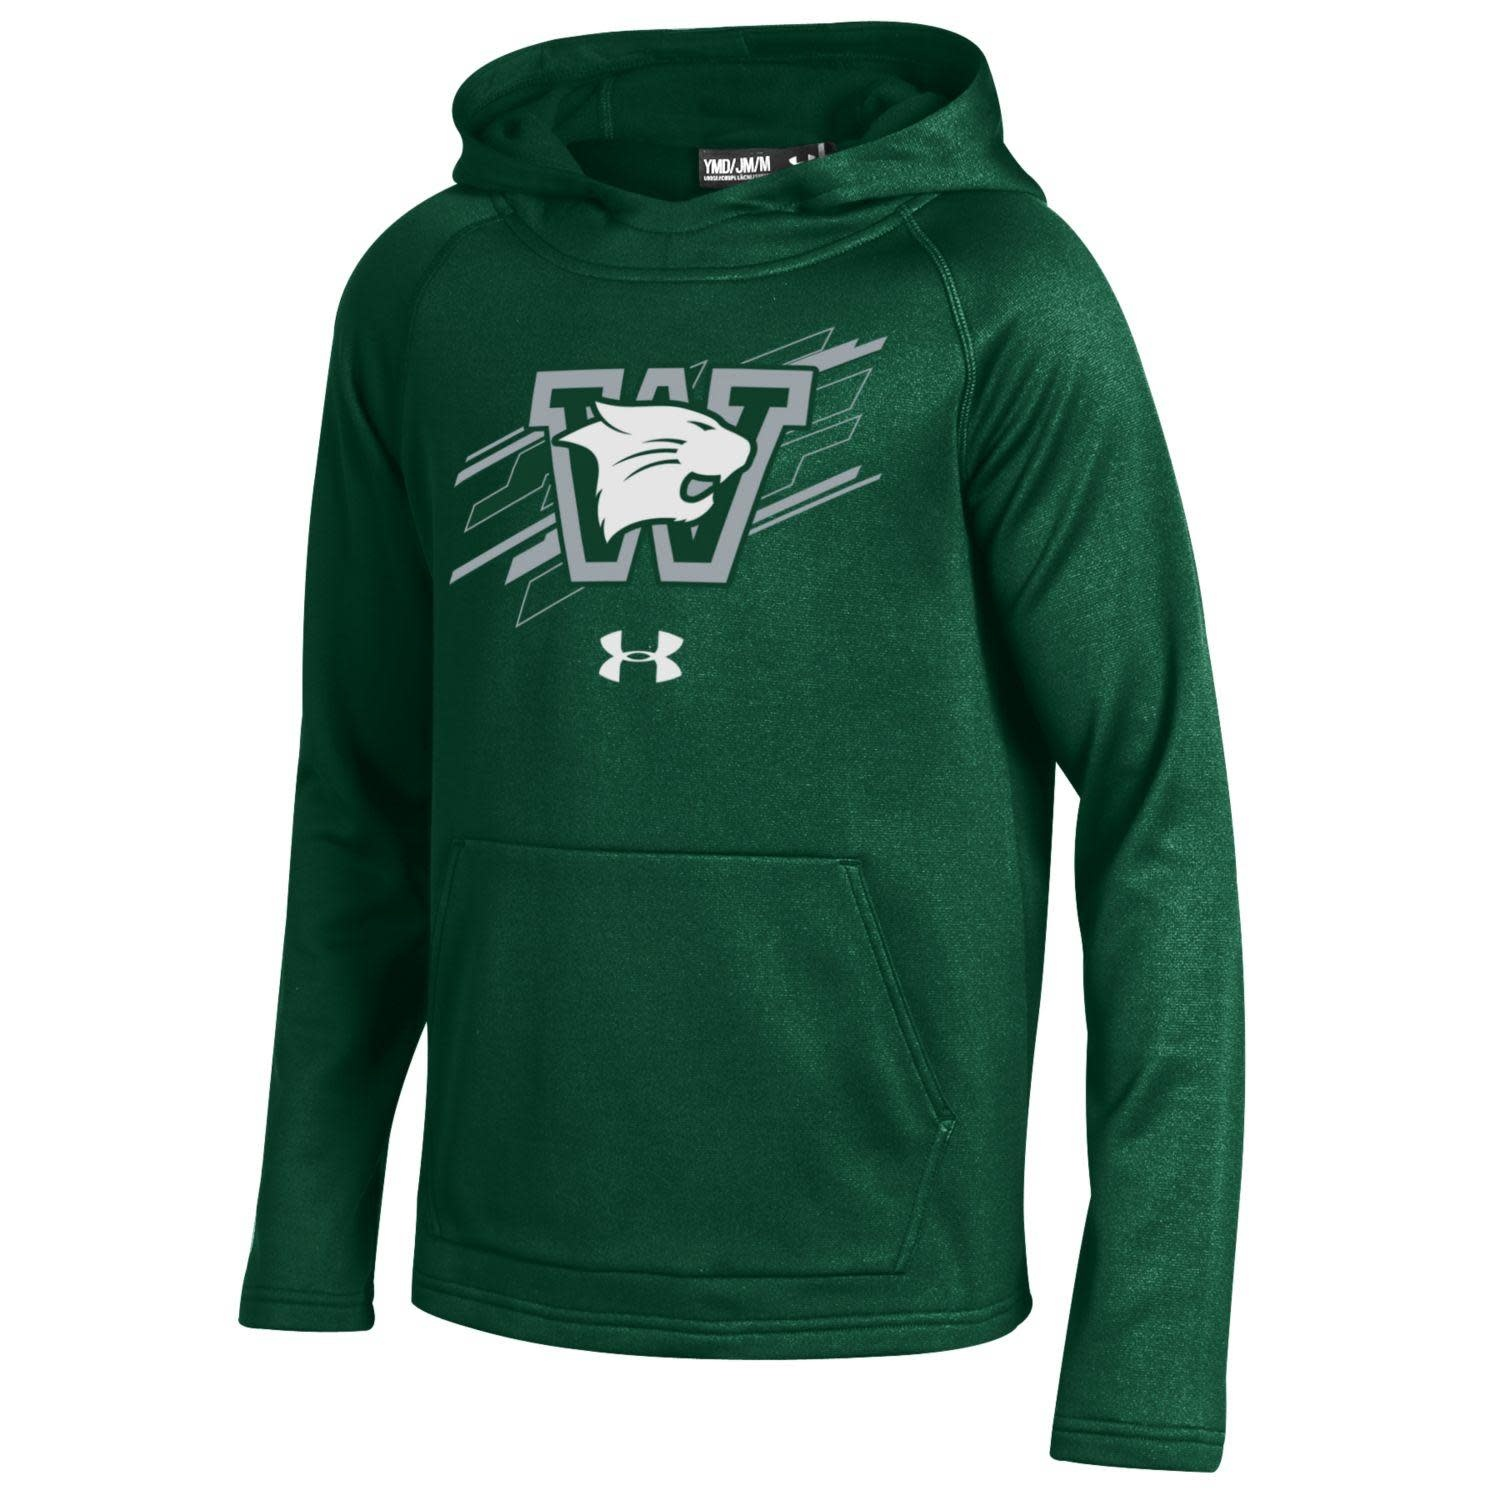 Under Armour Sweatshirt: UA Youth Ninja Hoody - Green